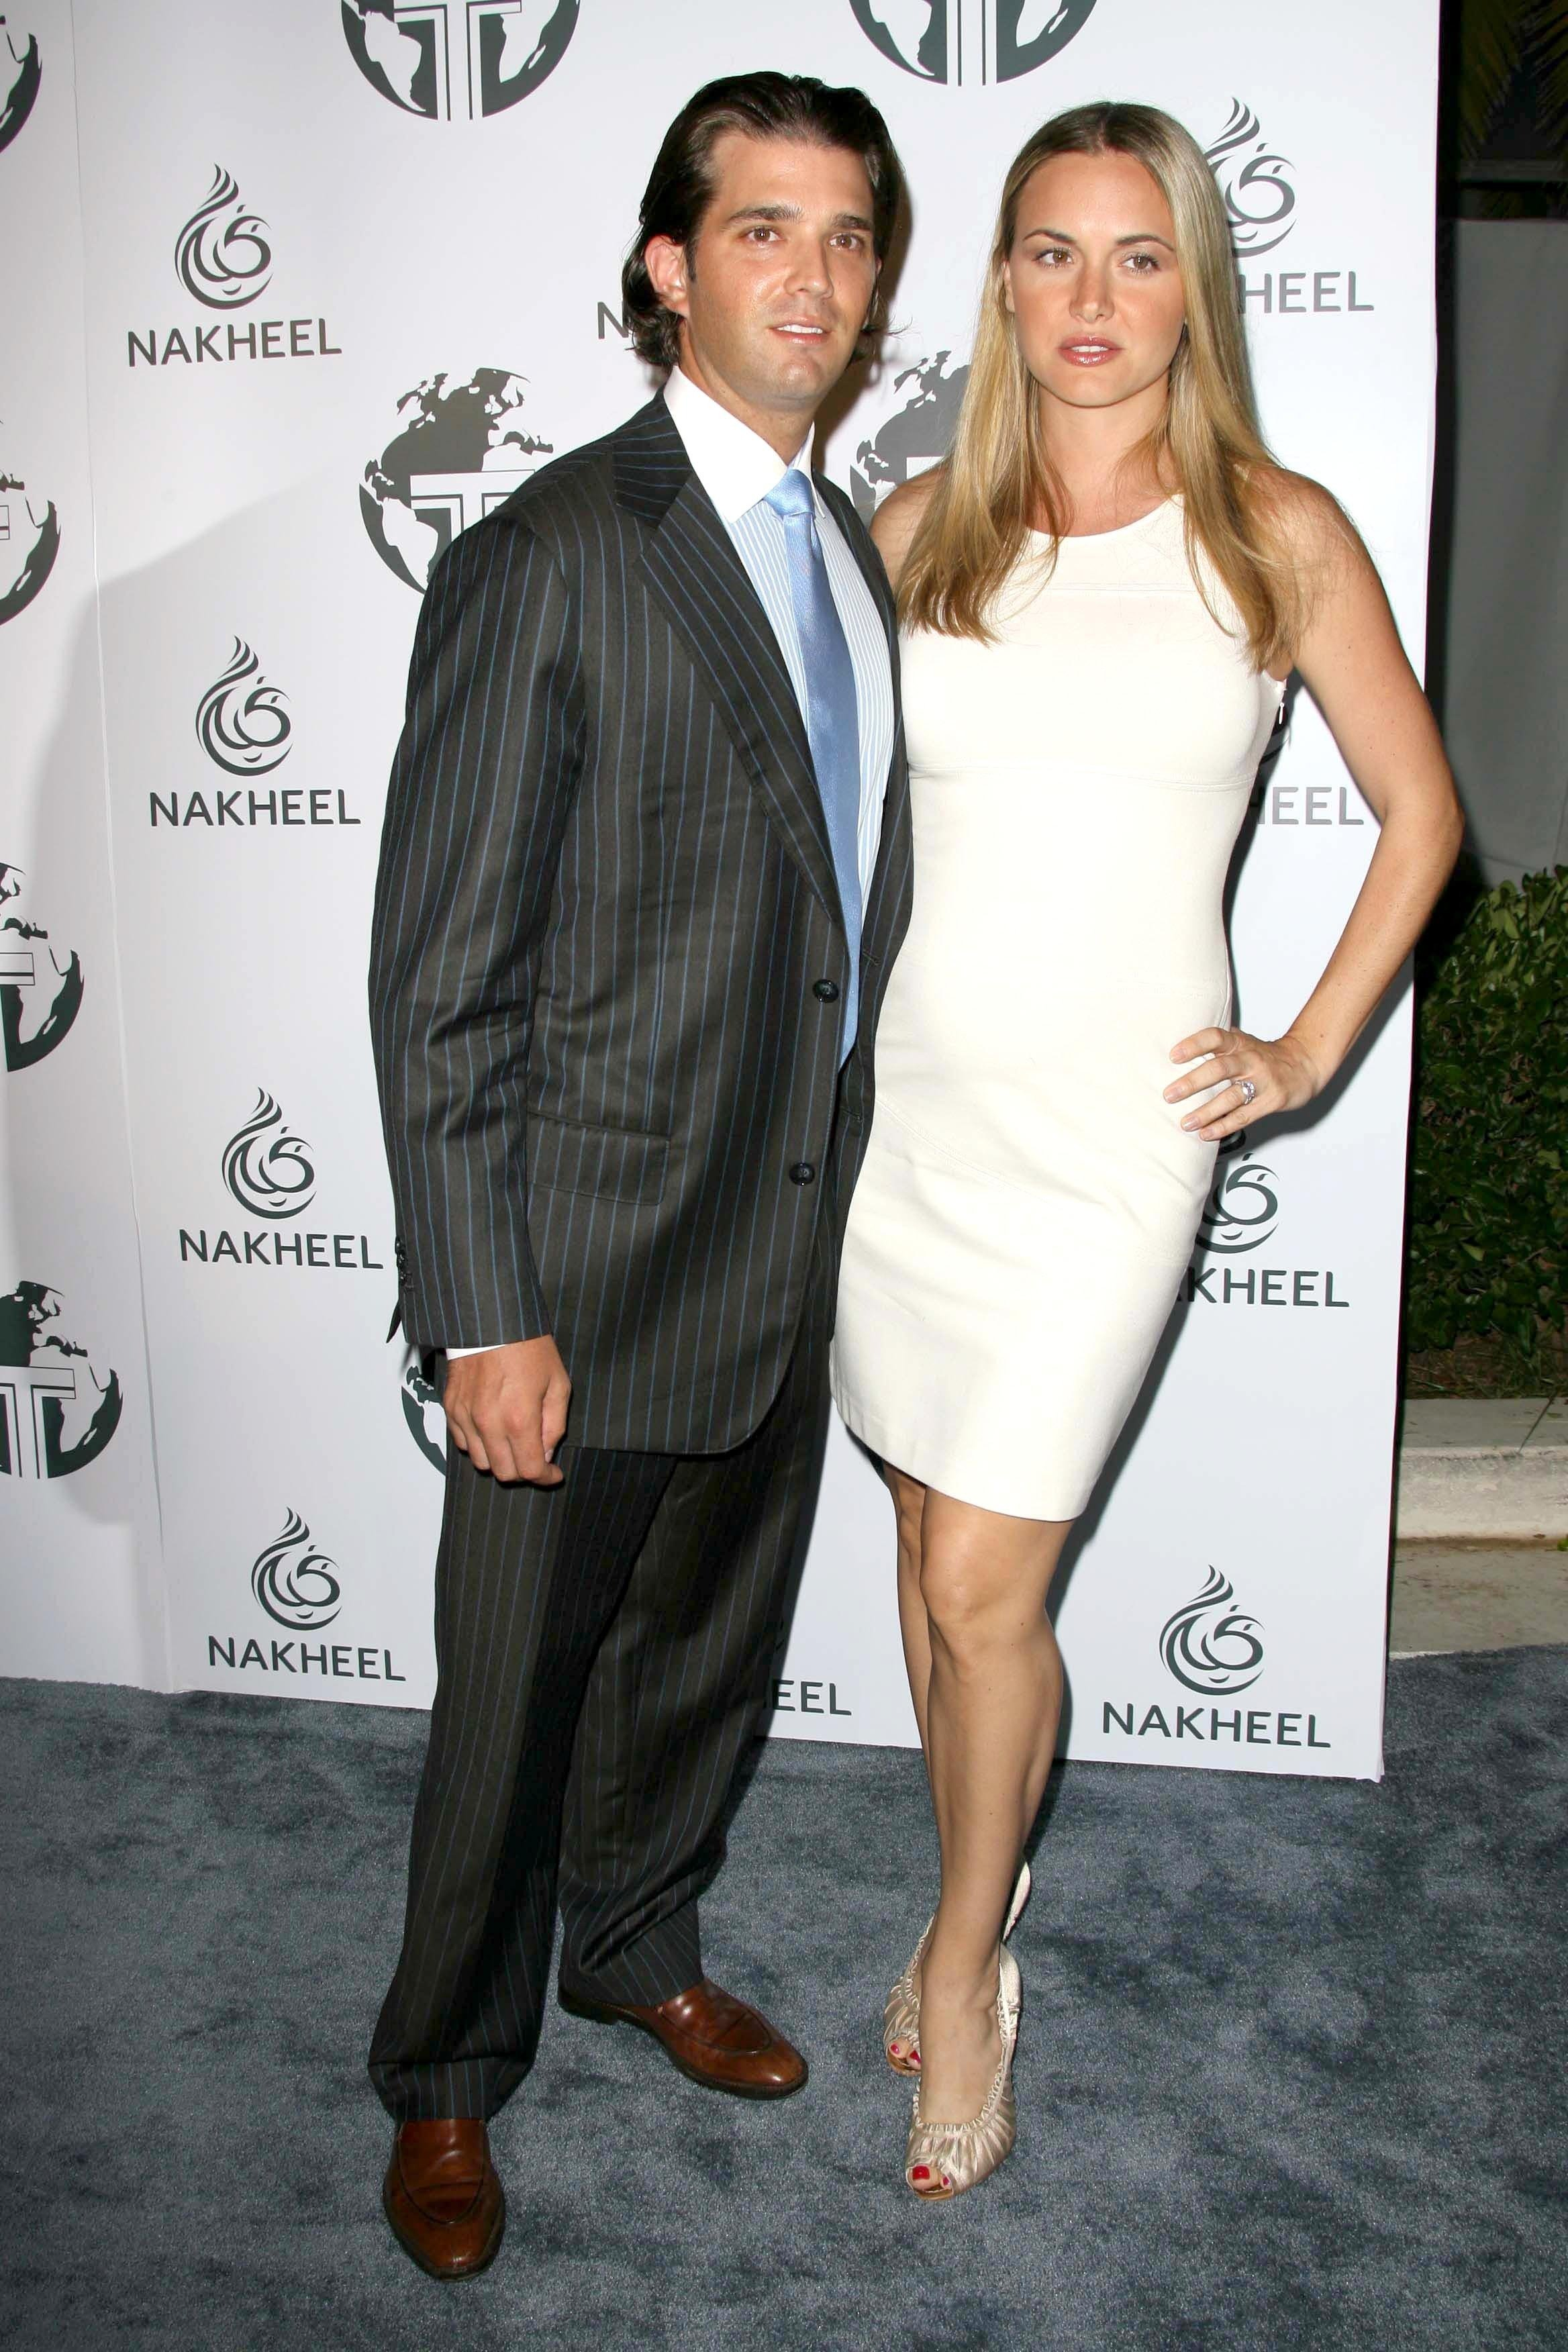 Donald Trump Jr. and Vanessa Haydon at a party to introduce the Trump Tower Dubai in 2008. Image credit: Shutterstock